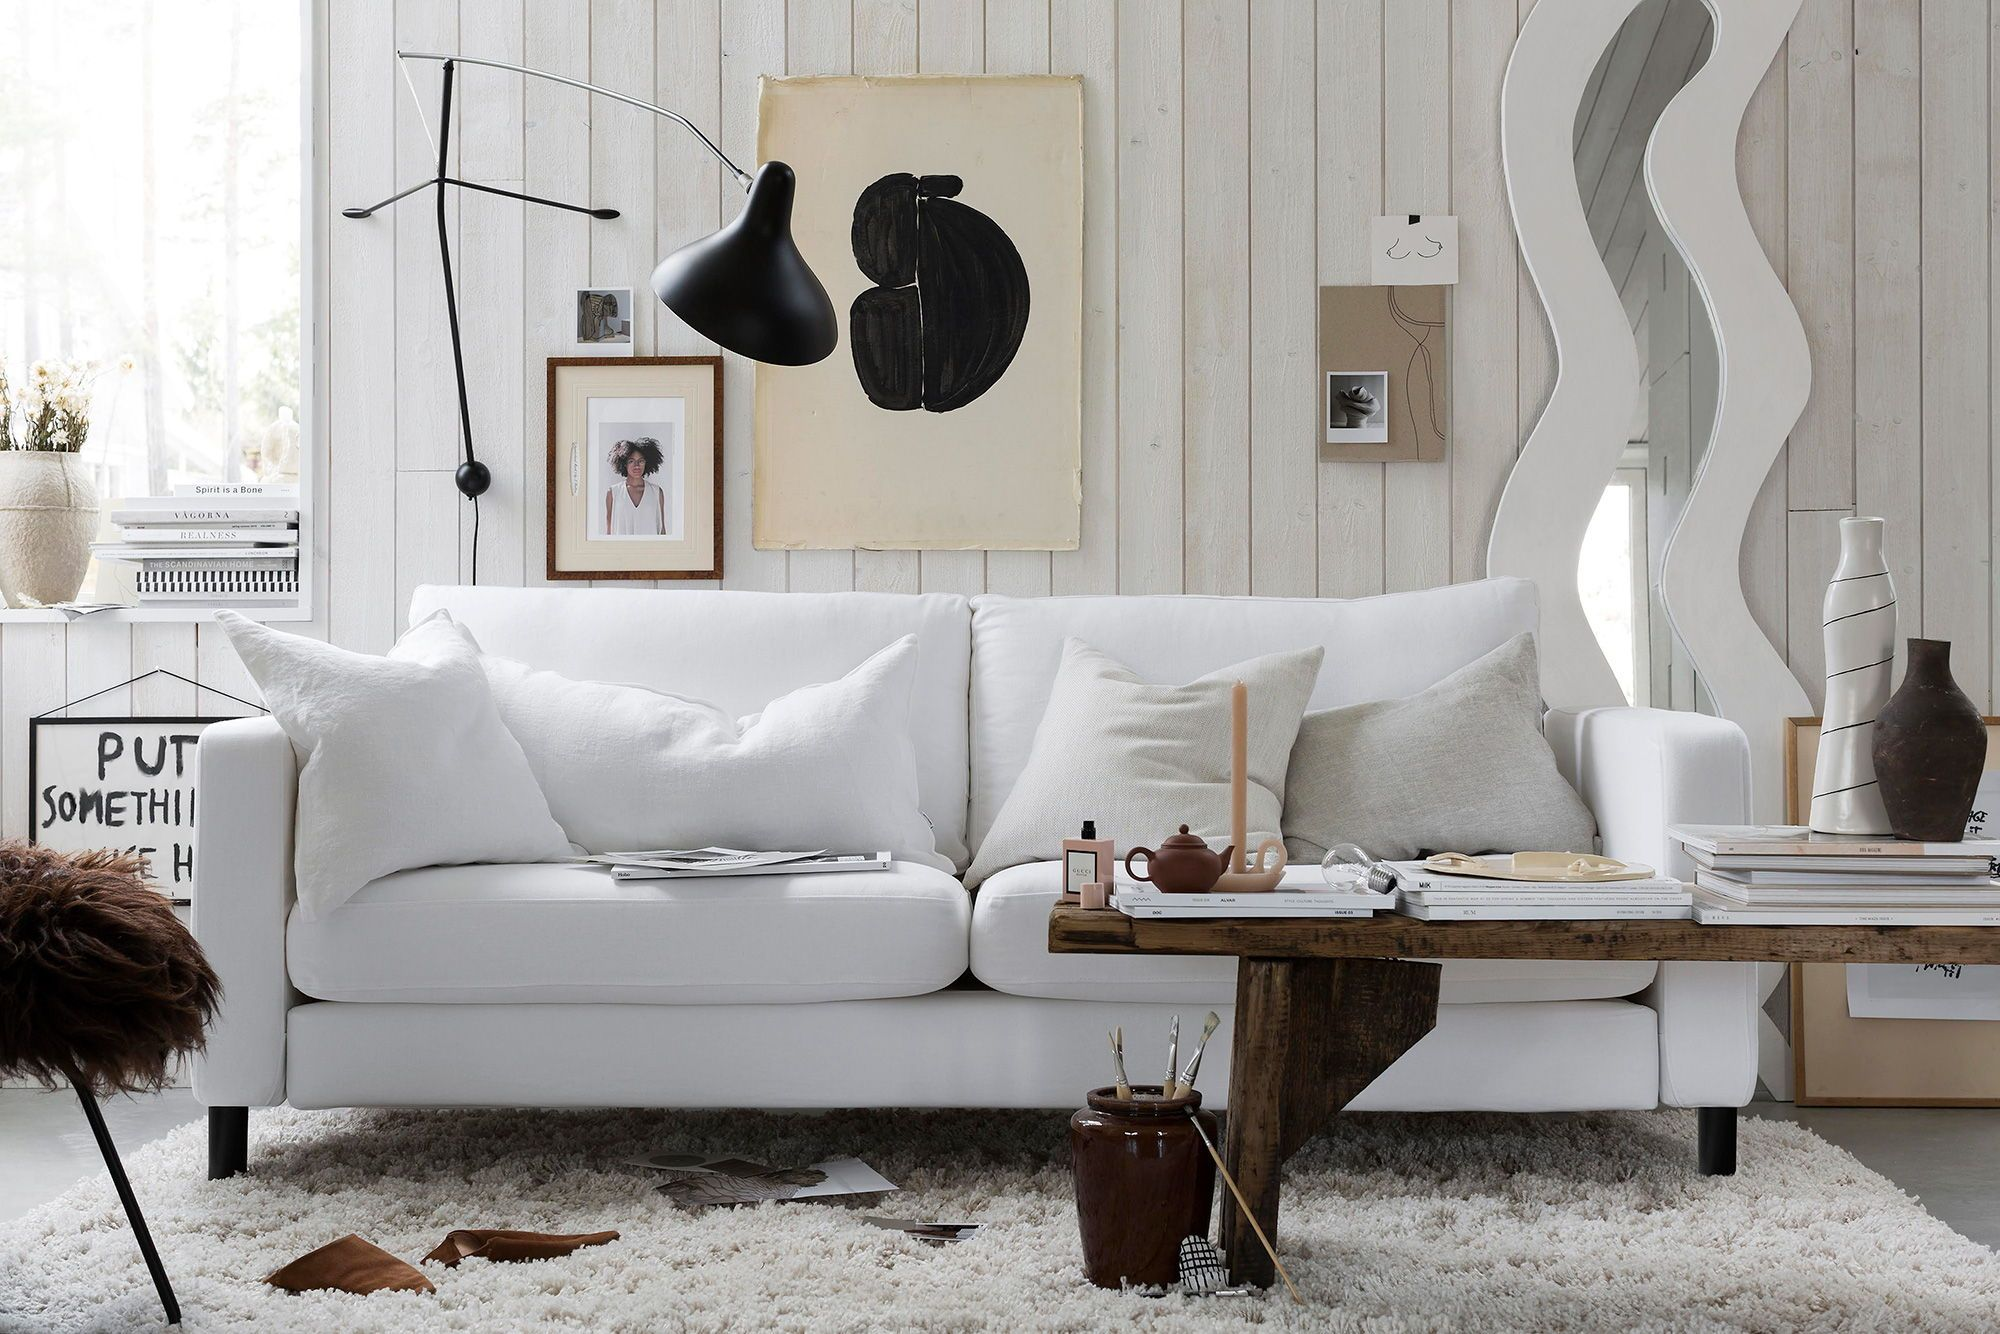 Cosy Layered Scandinavian Boho Vibes In A Neutral White Colour Palette Featuring Graphic Black Accents And White Sofas White Slipcover Sofa Apartment Furniture